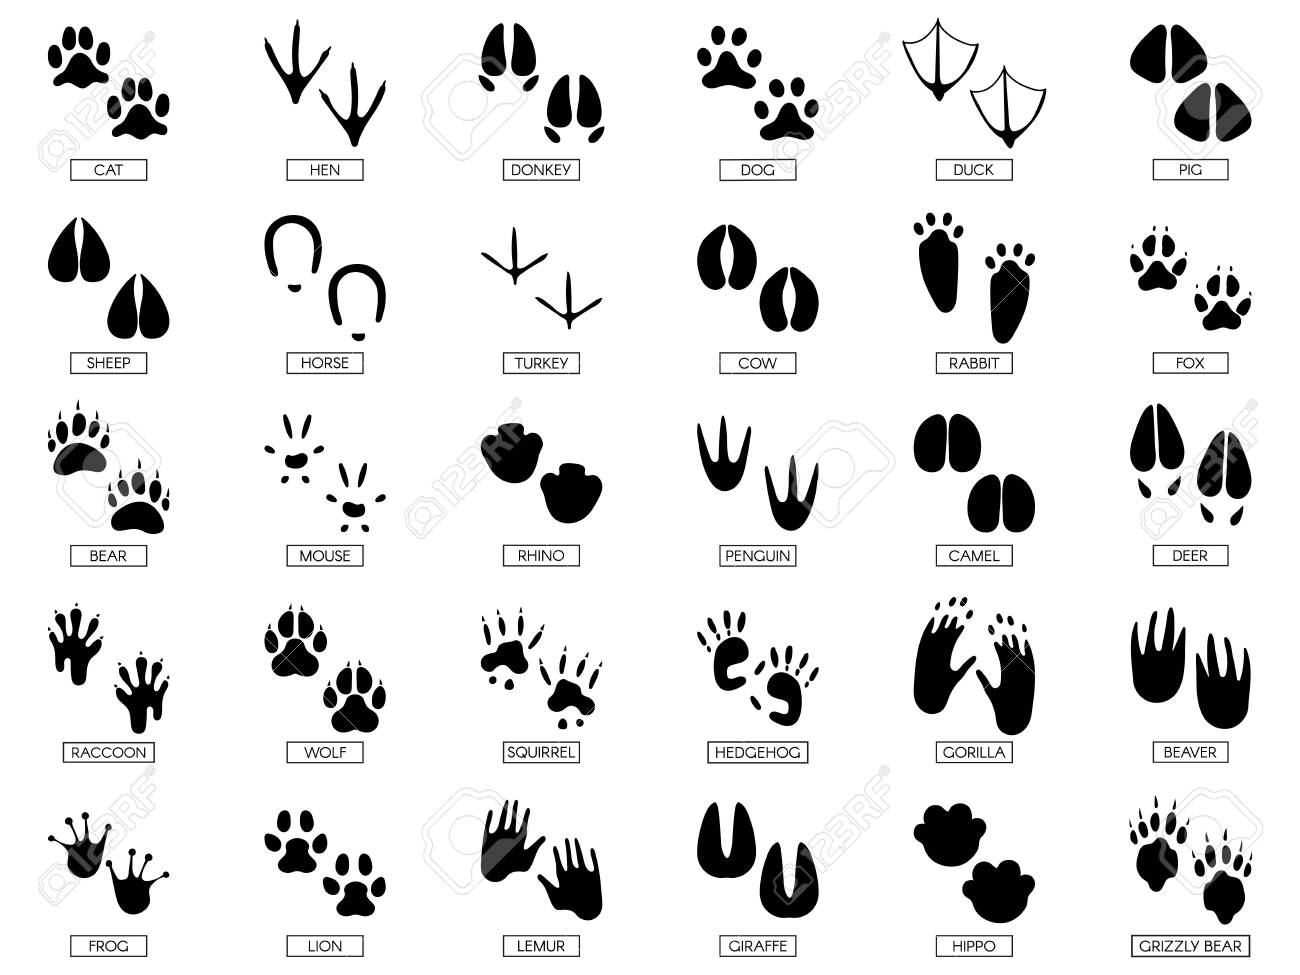 Animals footprints. Animal feet silhouette, frog footprint and pets foots silhouettes prints. Wild african animals paw walking track or footprint tracks. Vector illustration isolated sign set - 124396138